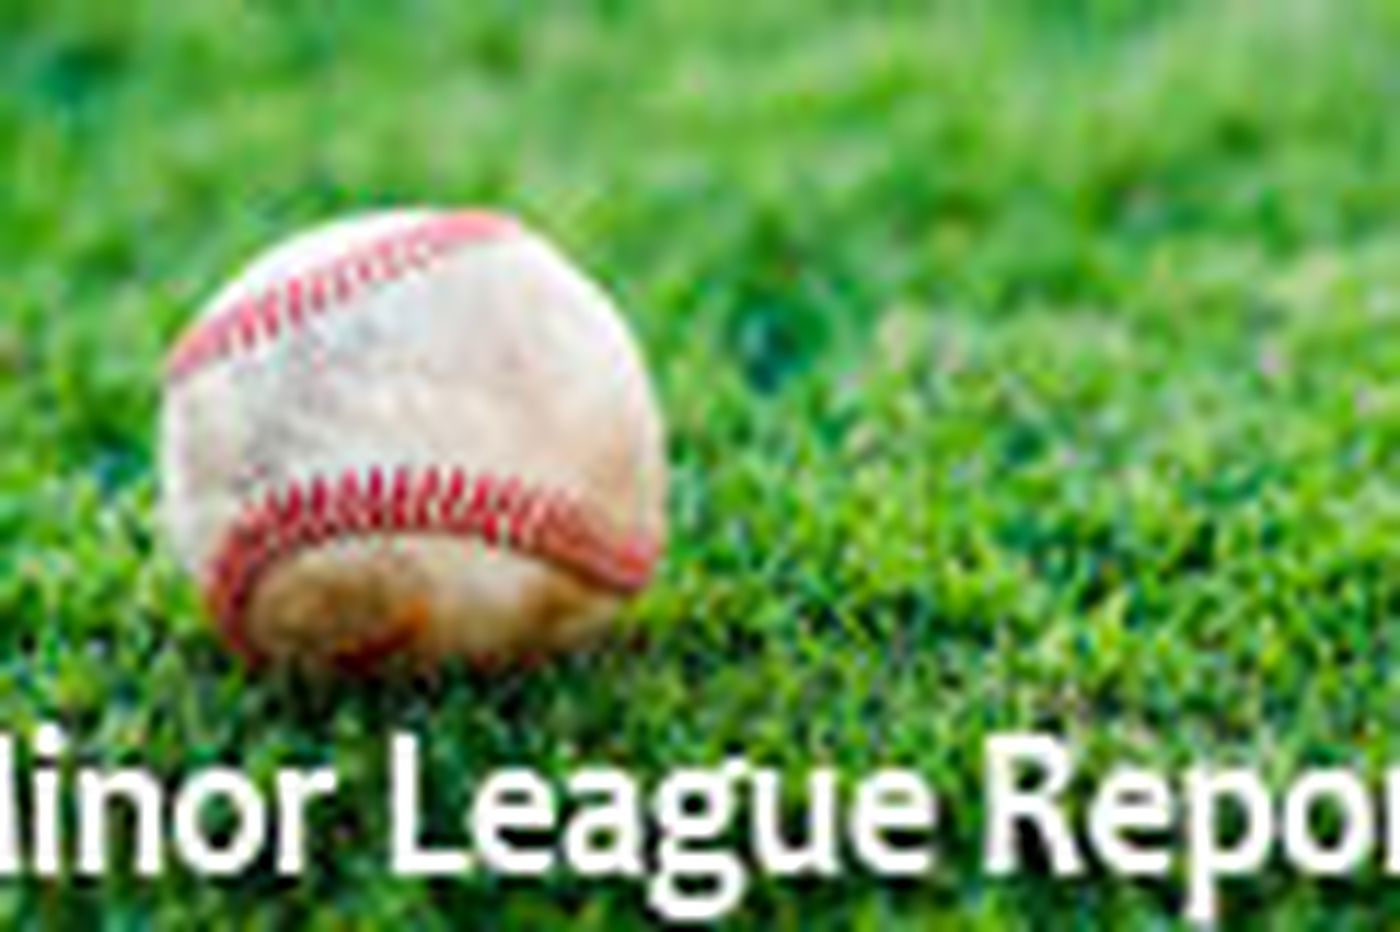 Minor Leagues: IronPigs top Braves; Reading Phils prevail